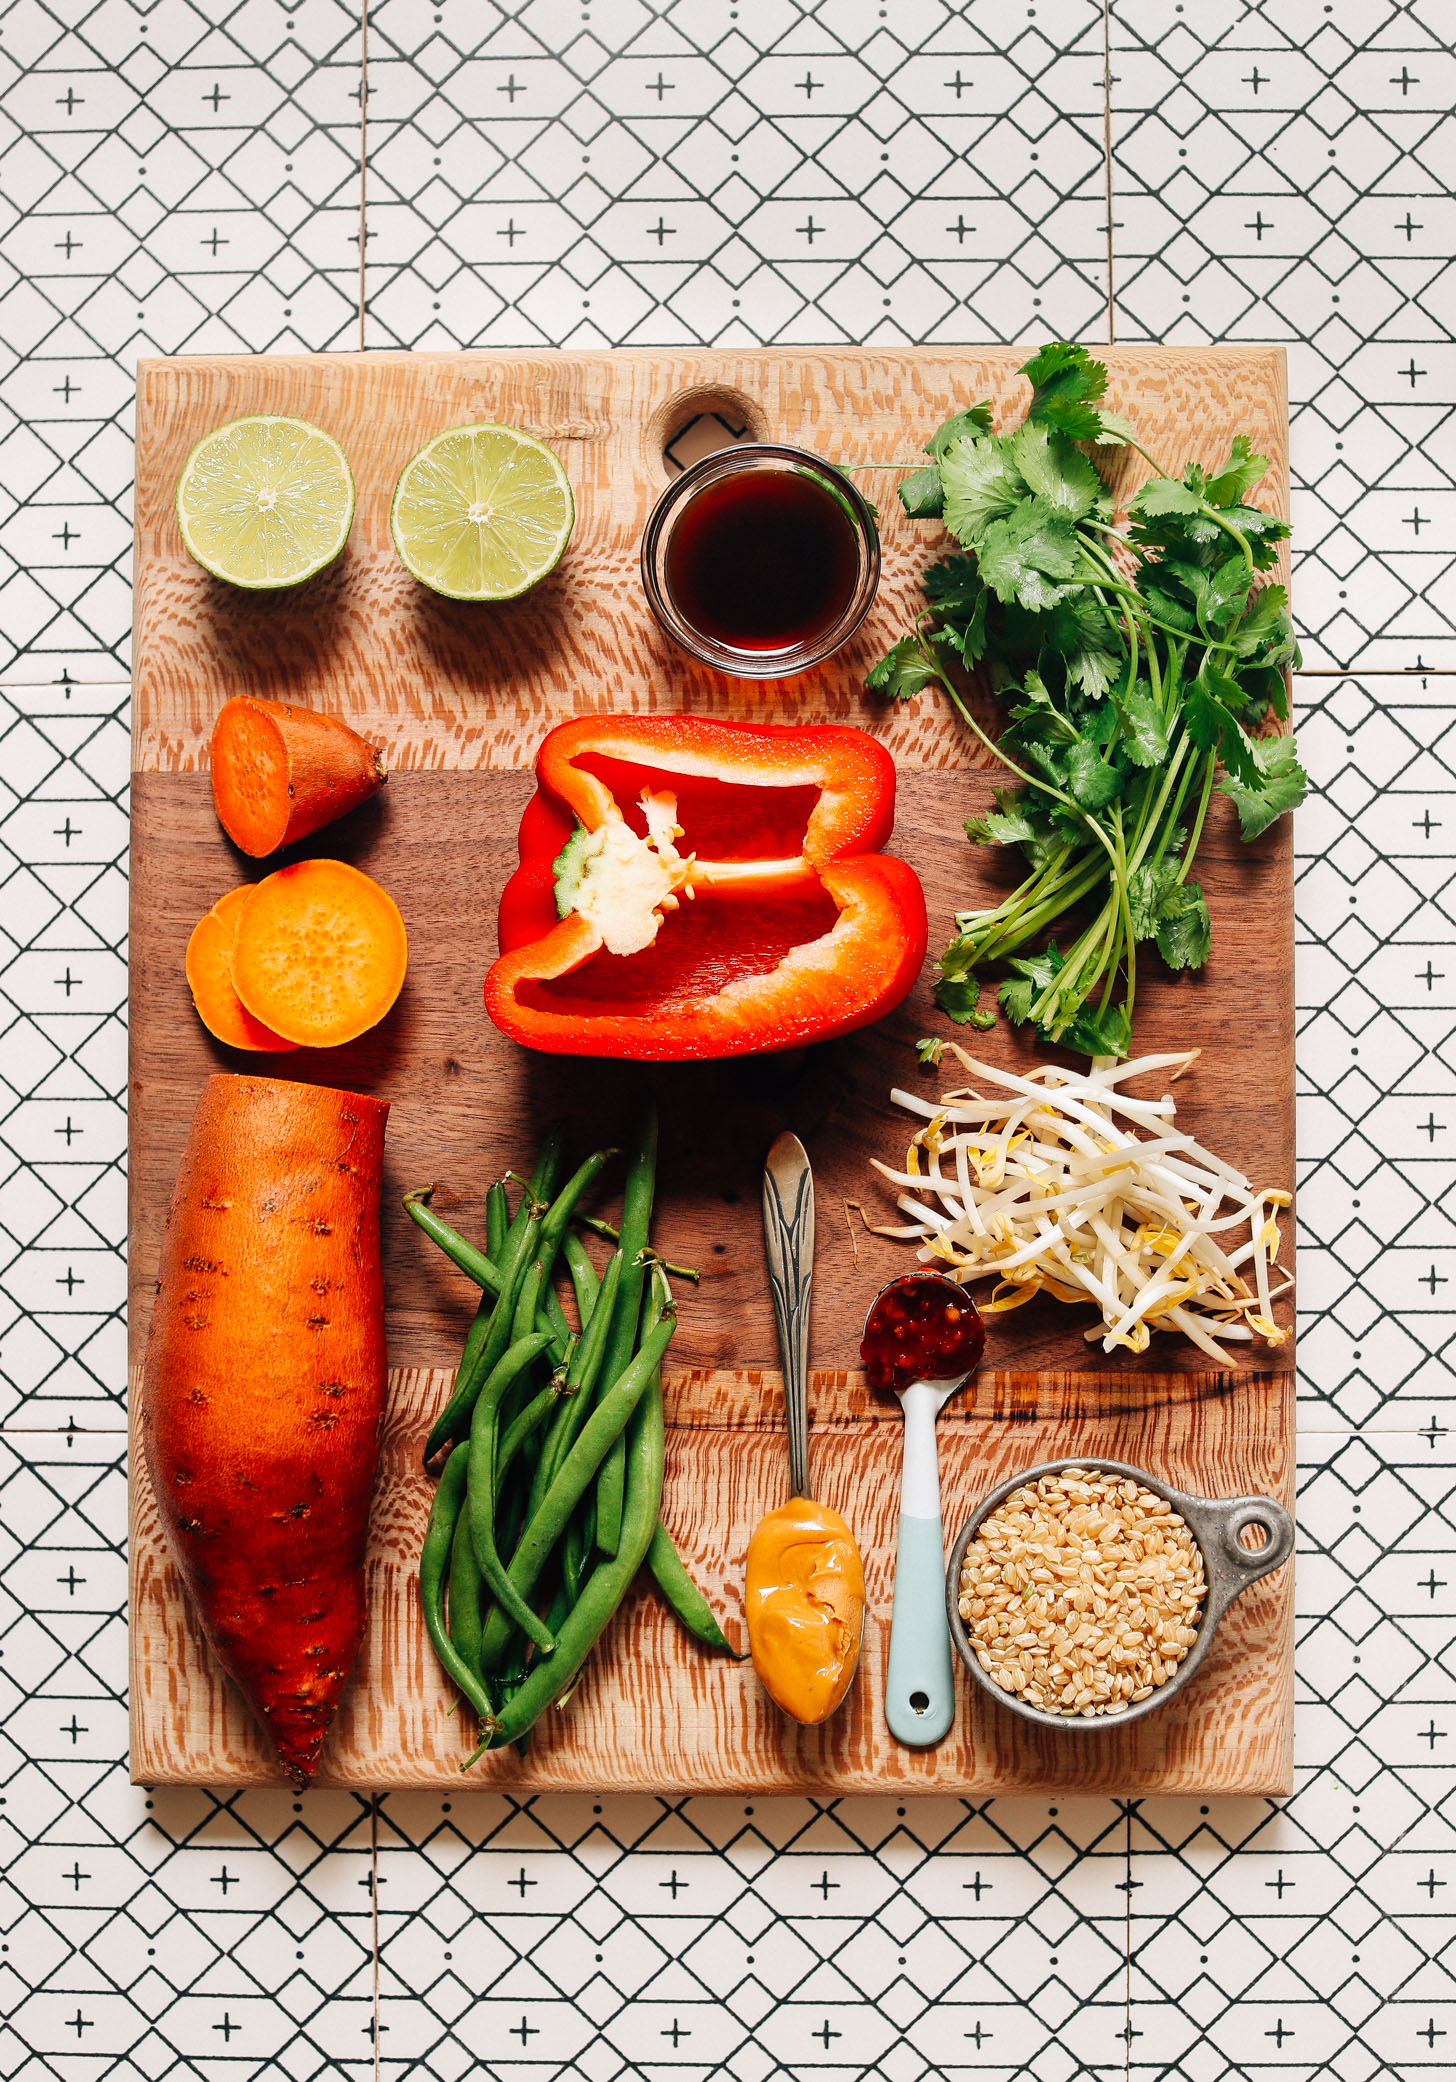 Wood cutting board filled with ingredients for making our Gado Gado with Spicy Peanut Sauce recipe